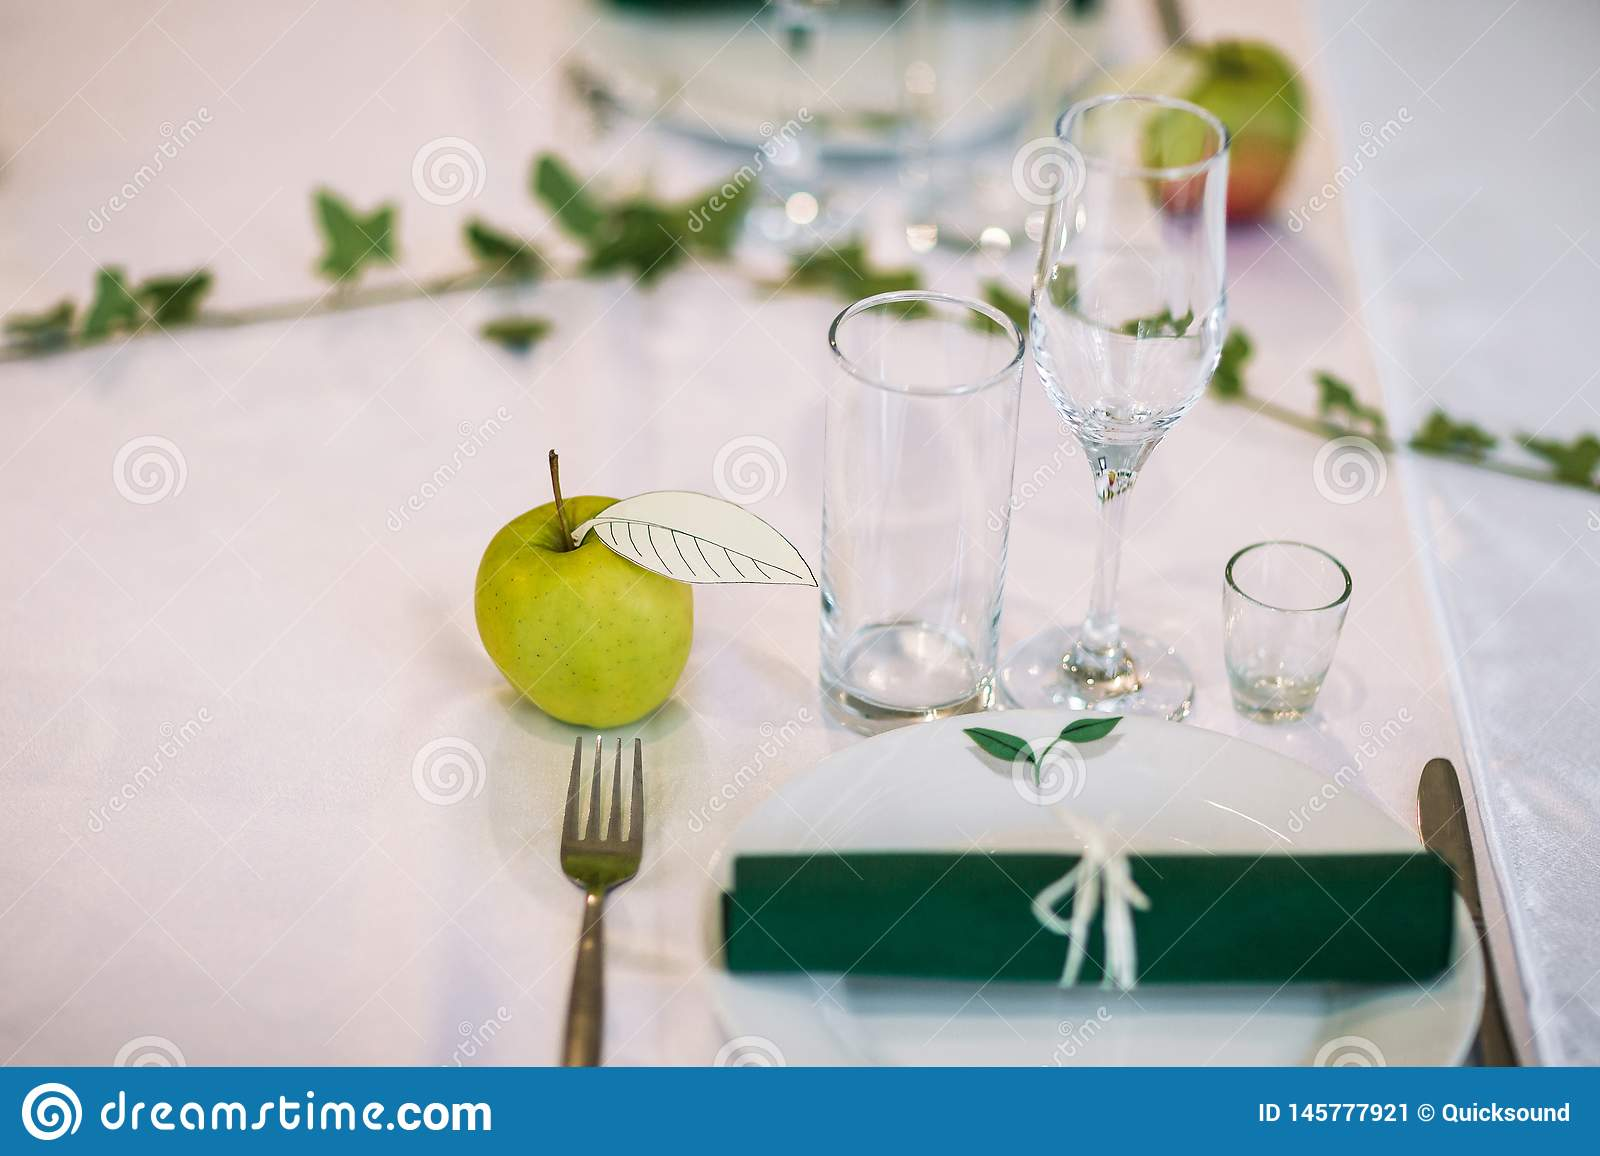 Apple Centerpiece On A Dinner Table Stock Image Image Of Plates Banquet 145777921